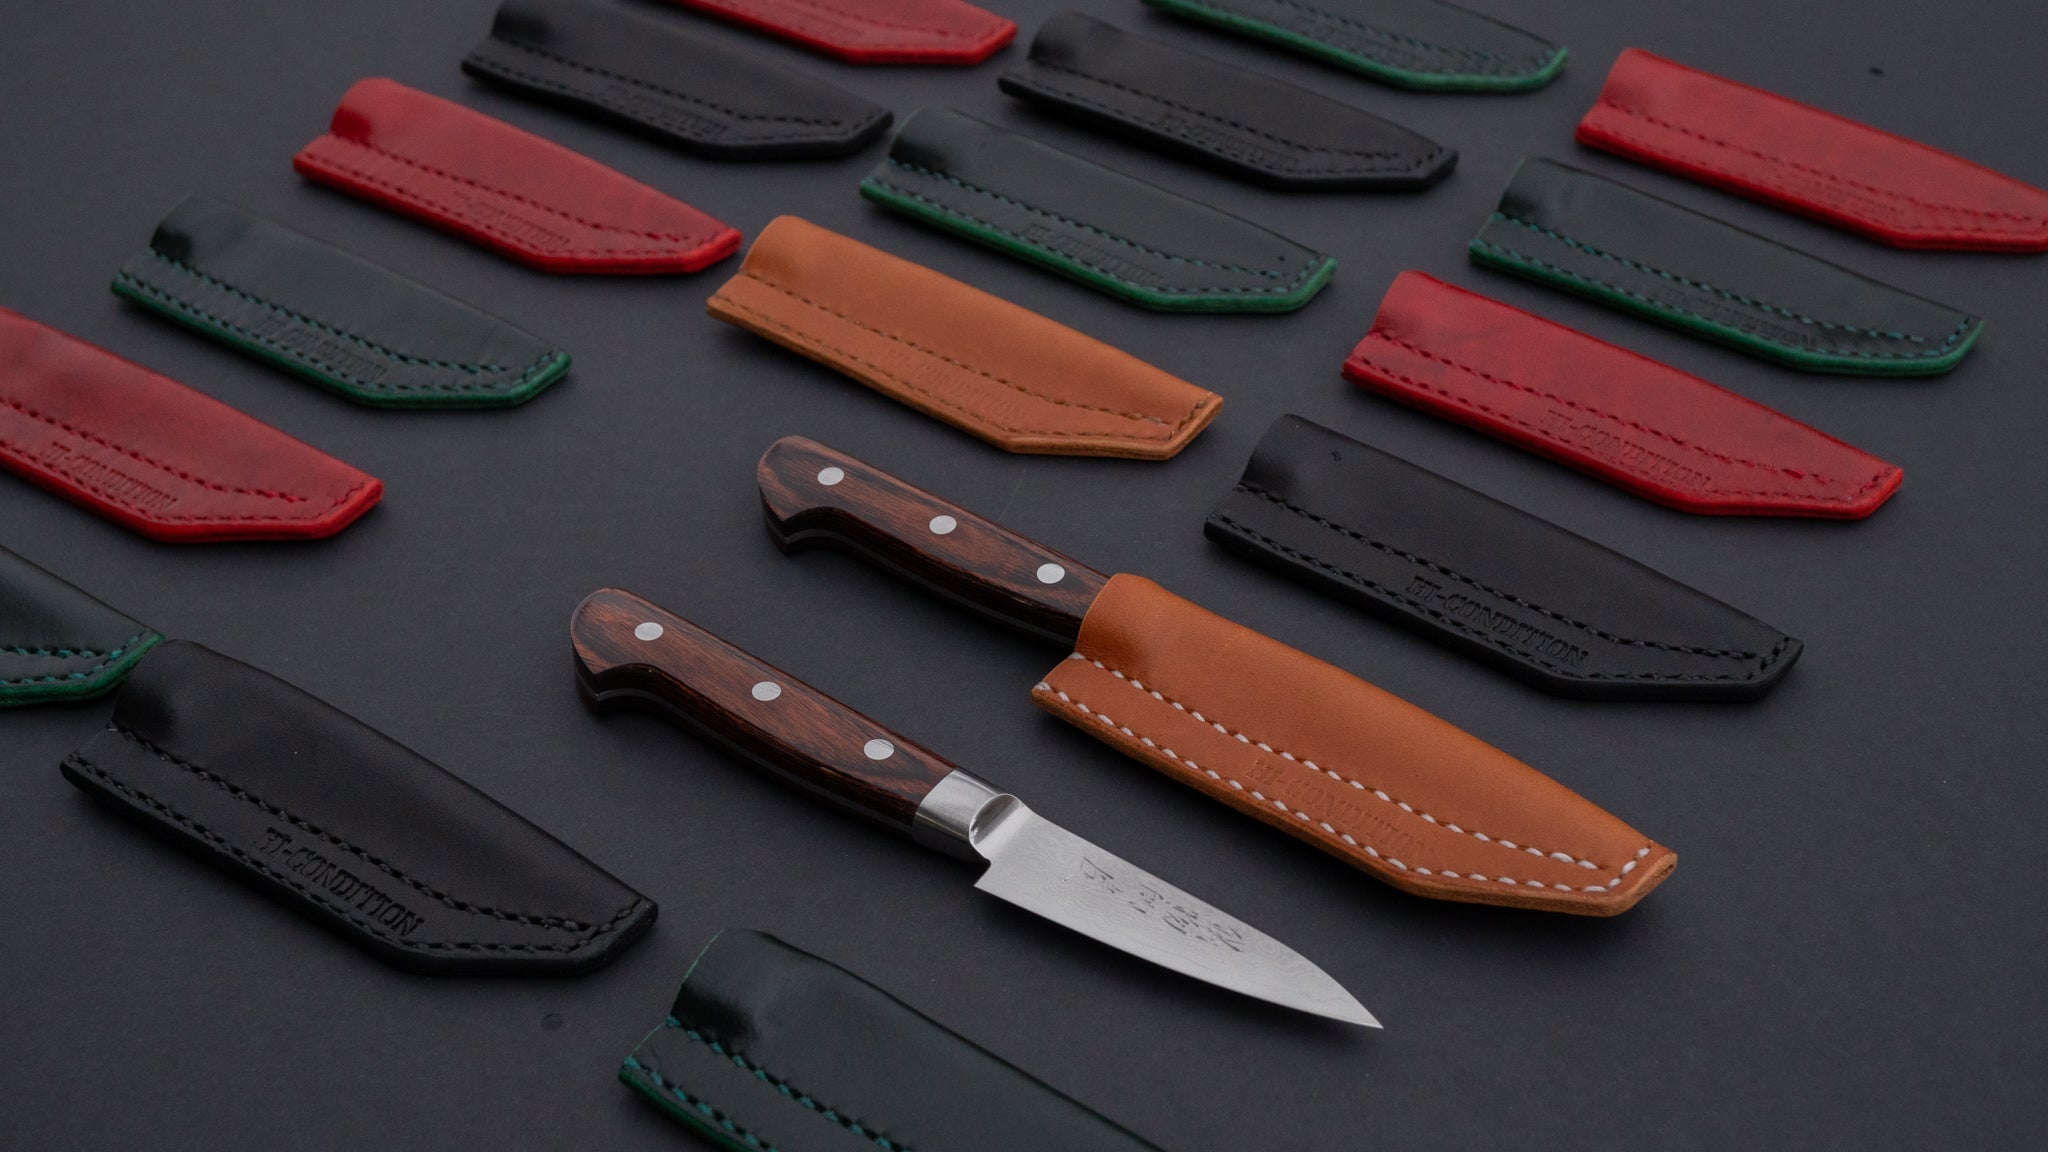 Hi-Condition Leather Knfie Sheath for Paring Knife | HITOHIRA